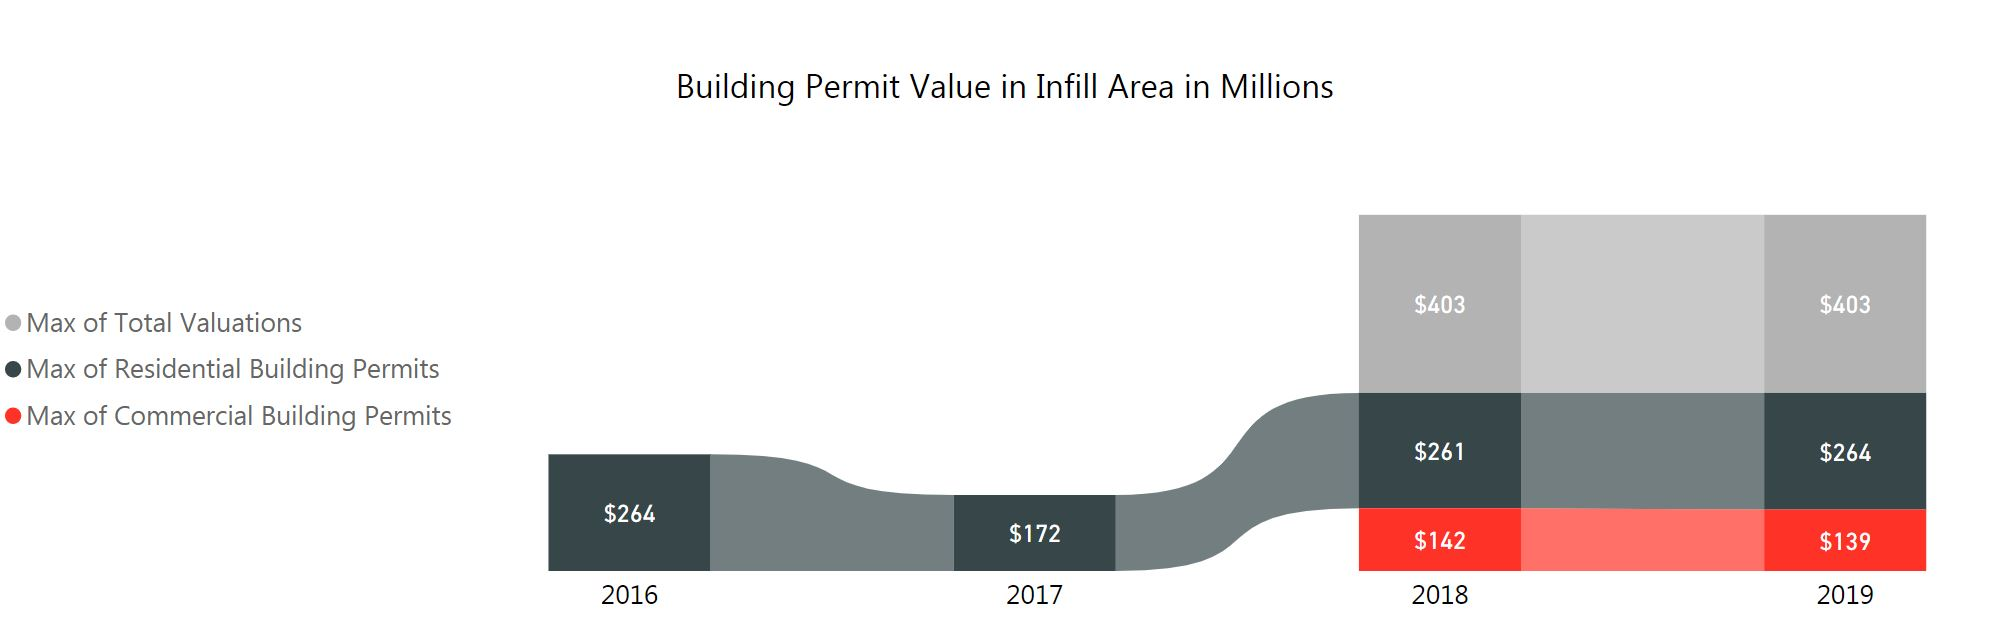 graph building permit value in infill. in 2019 commercial 139 million, residential 264 million, total 403 million